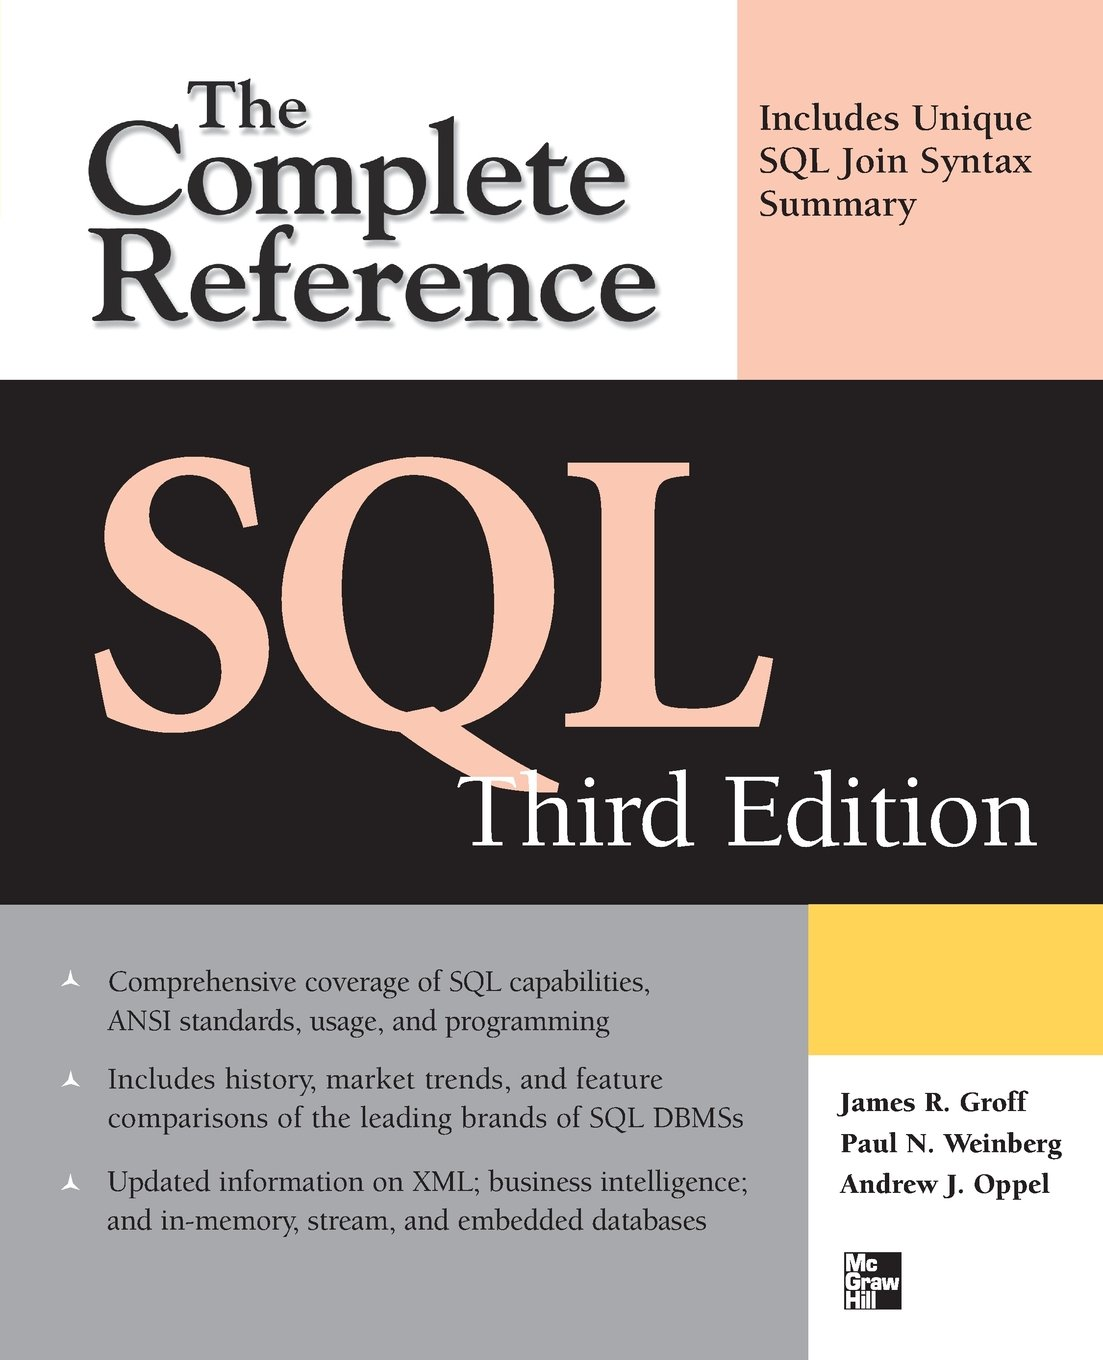 SQL The Complete Reference, 3rd Edition ISBN-13 9780071592550